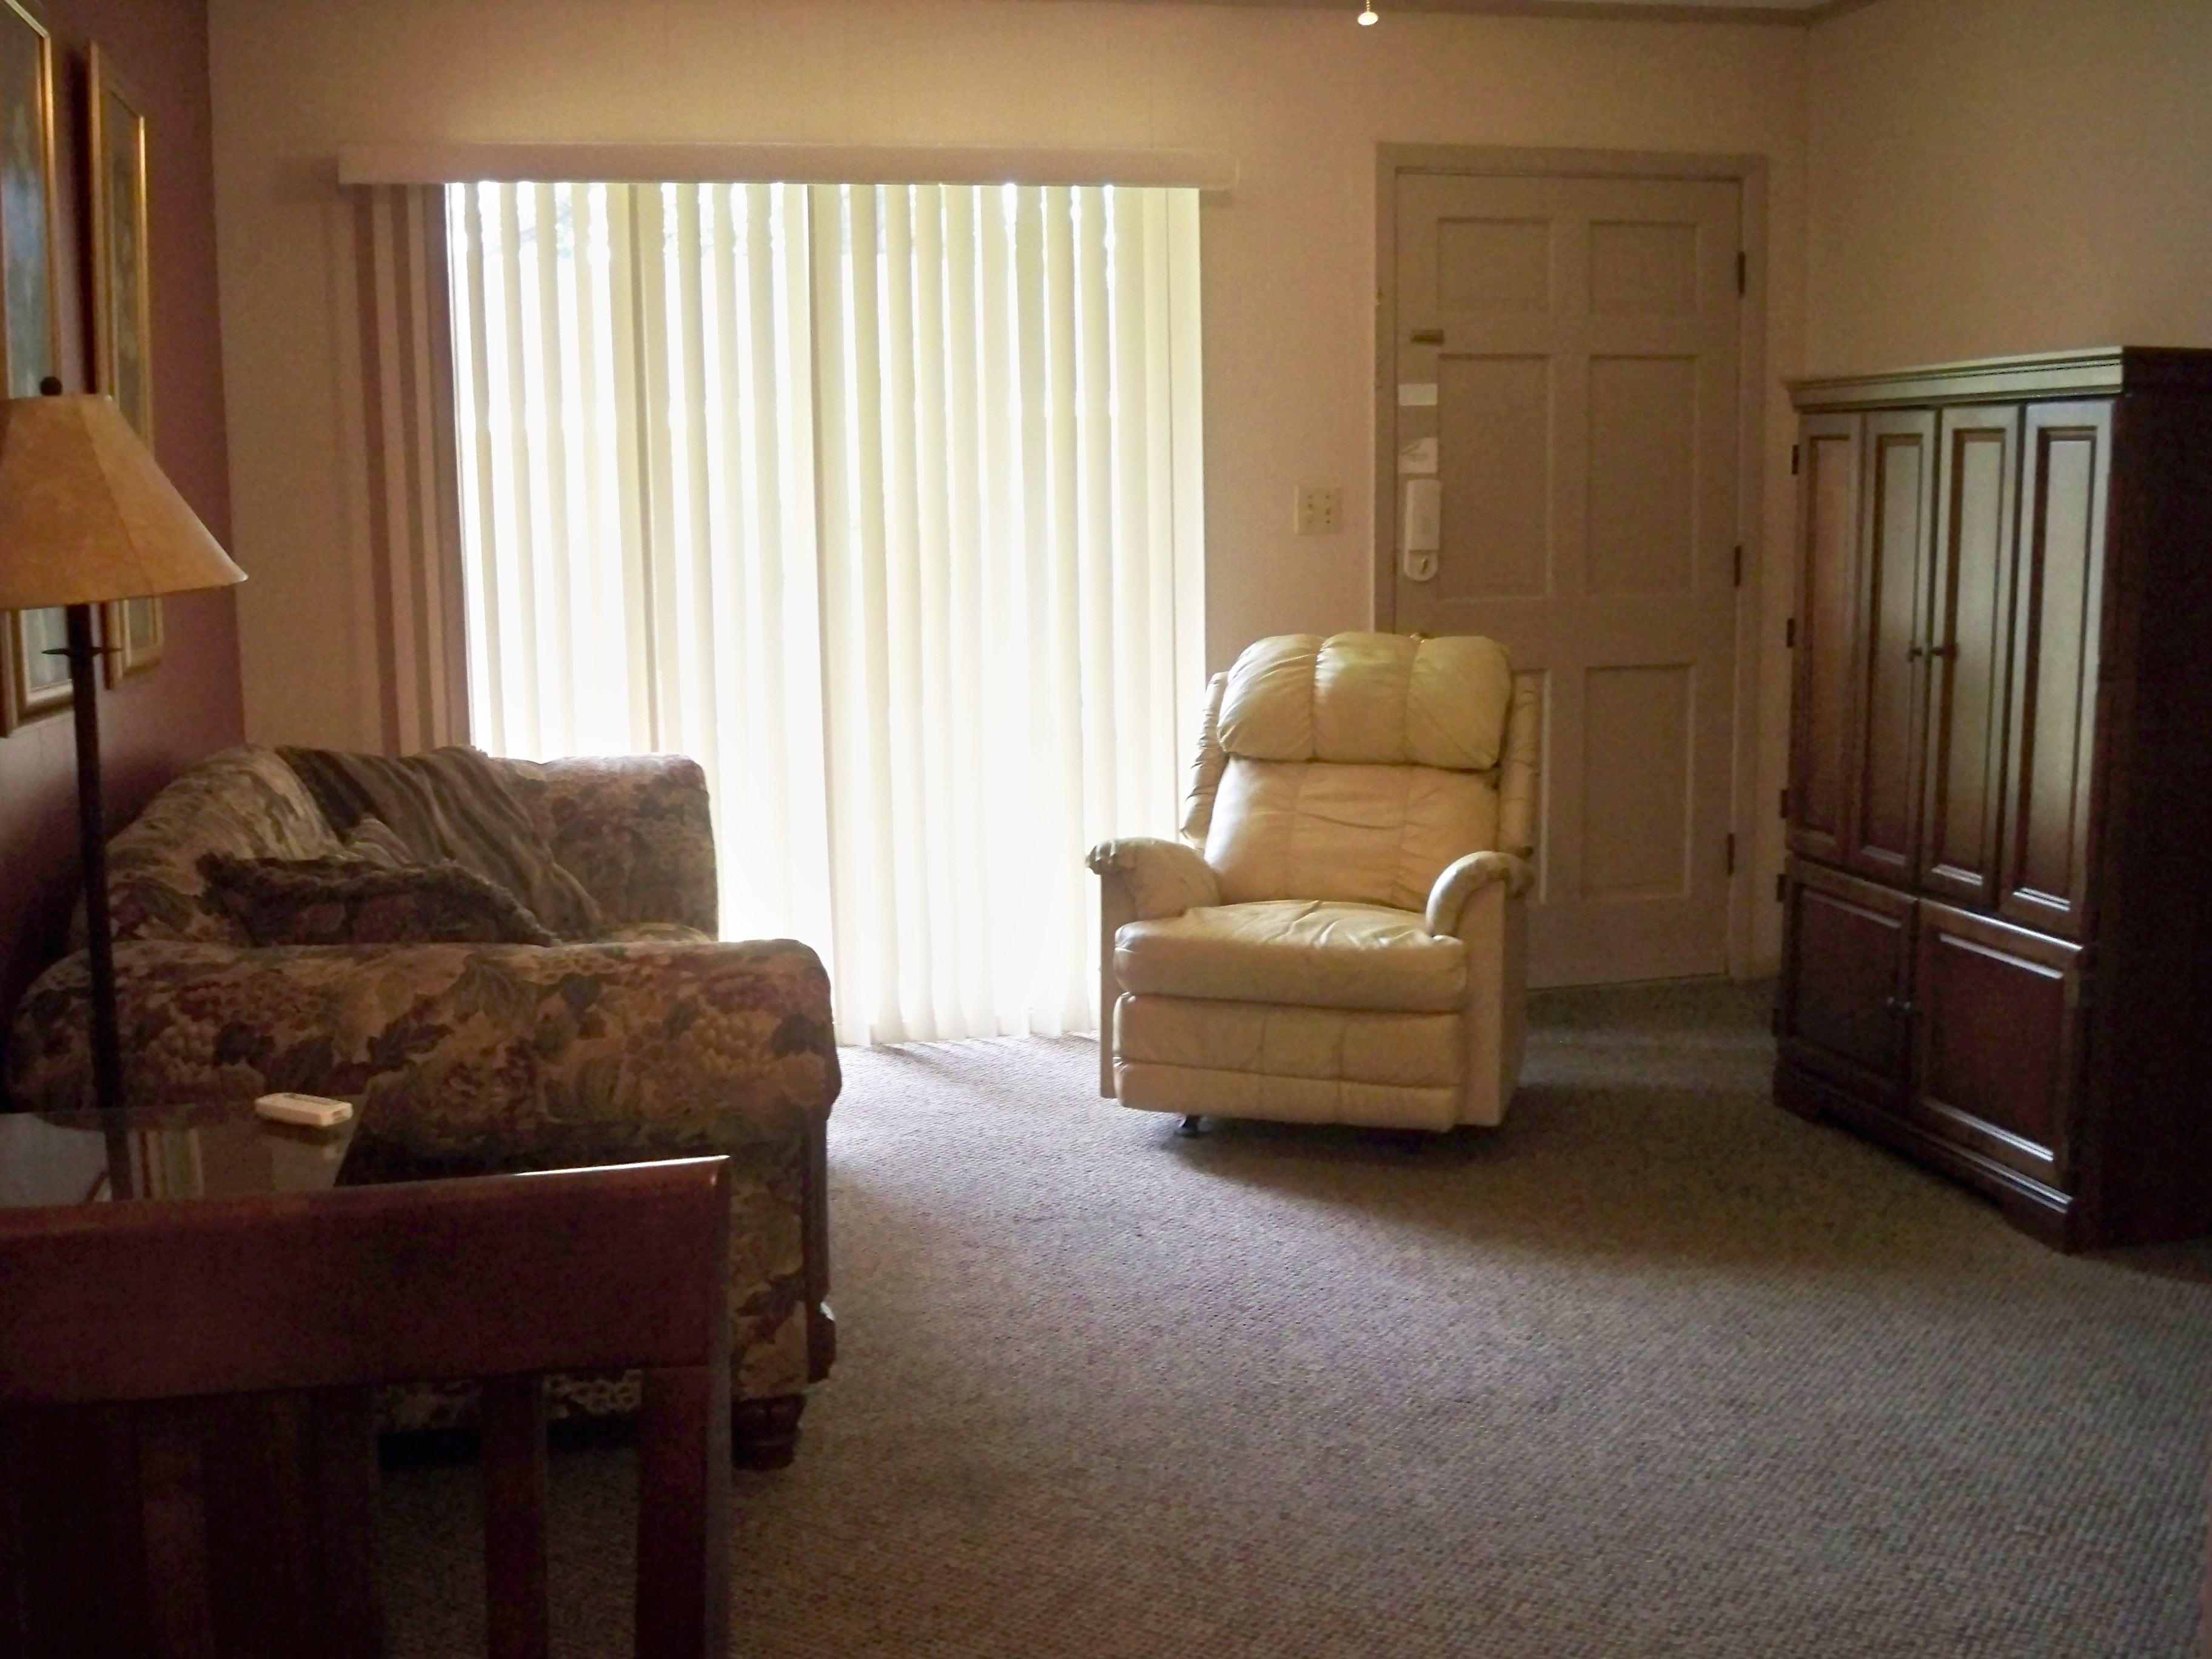 Canterbury Suites of Hattiesburg Mississippi - Hattiesburg, MS